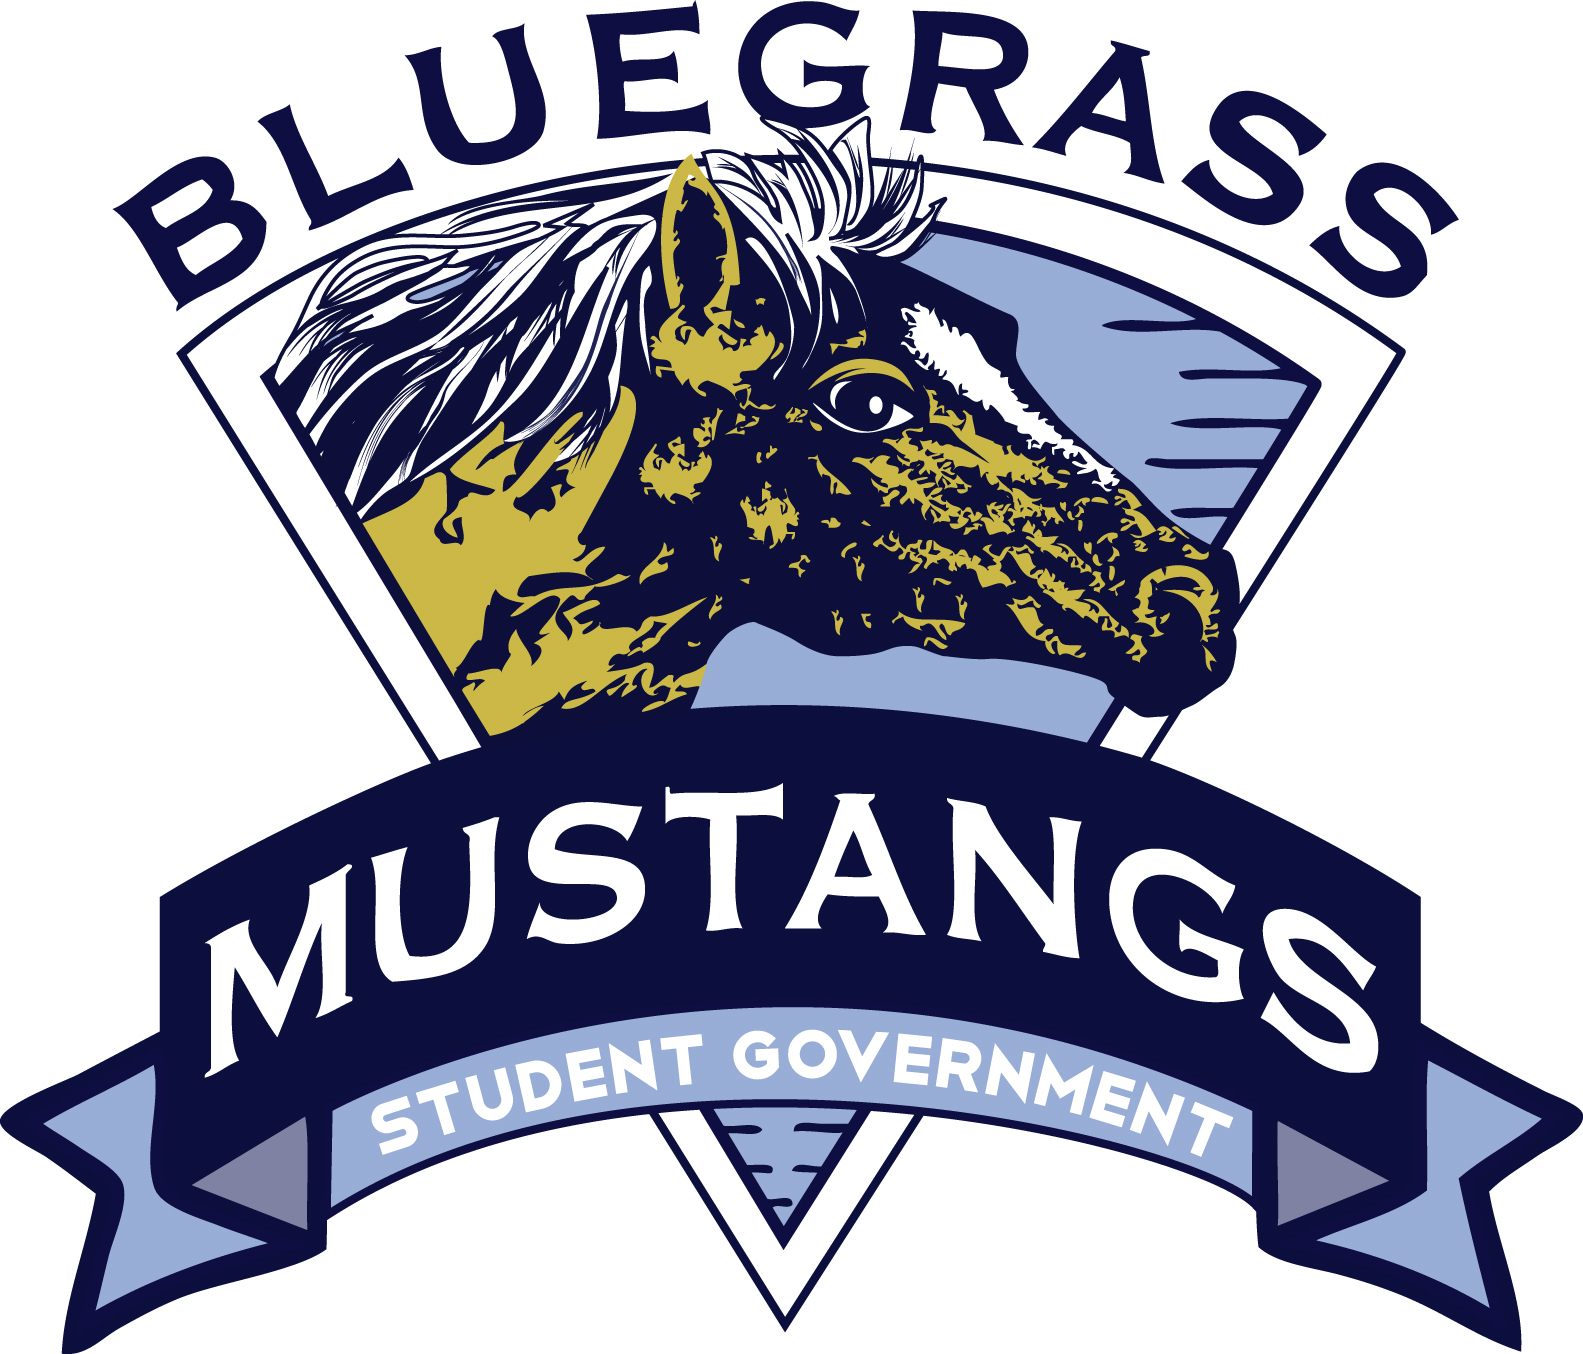 Bluegrass Mustangs Student Government